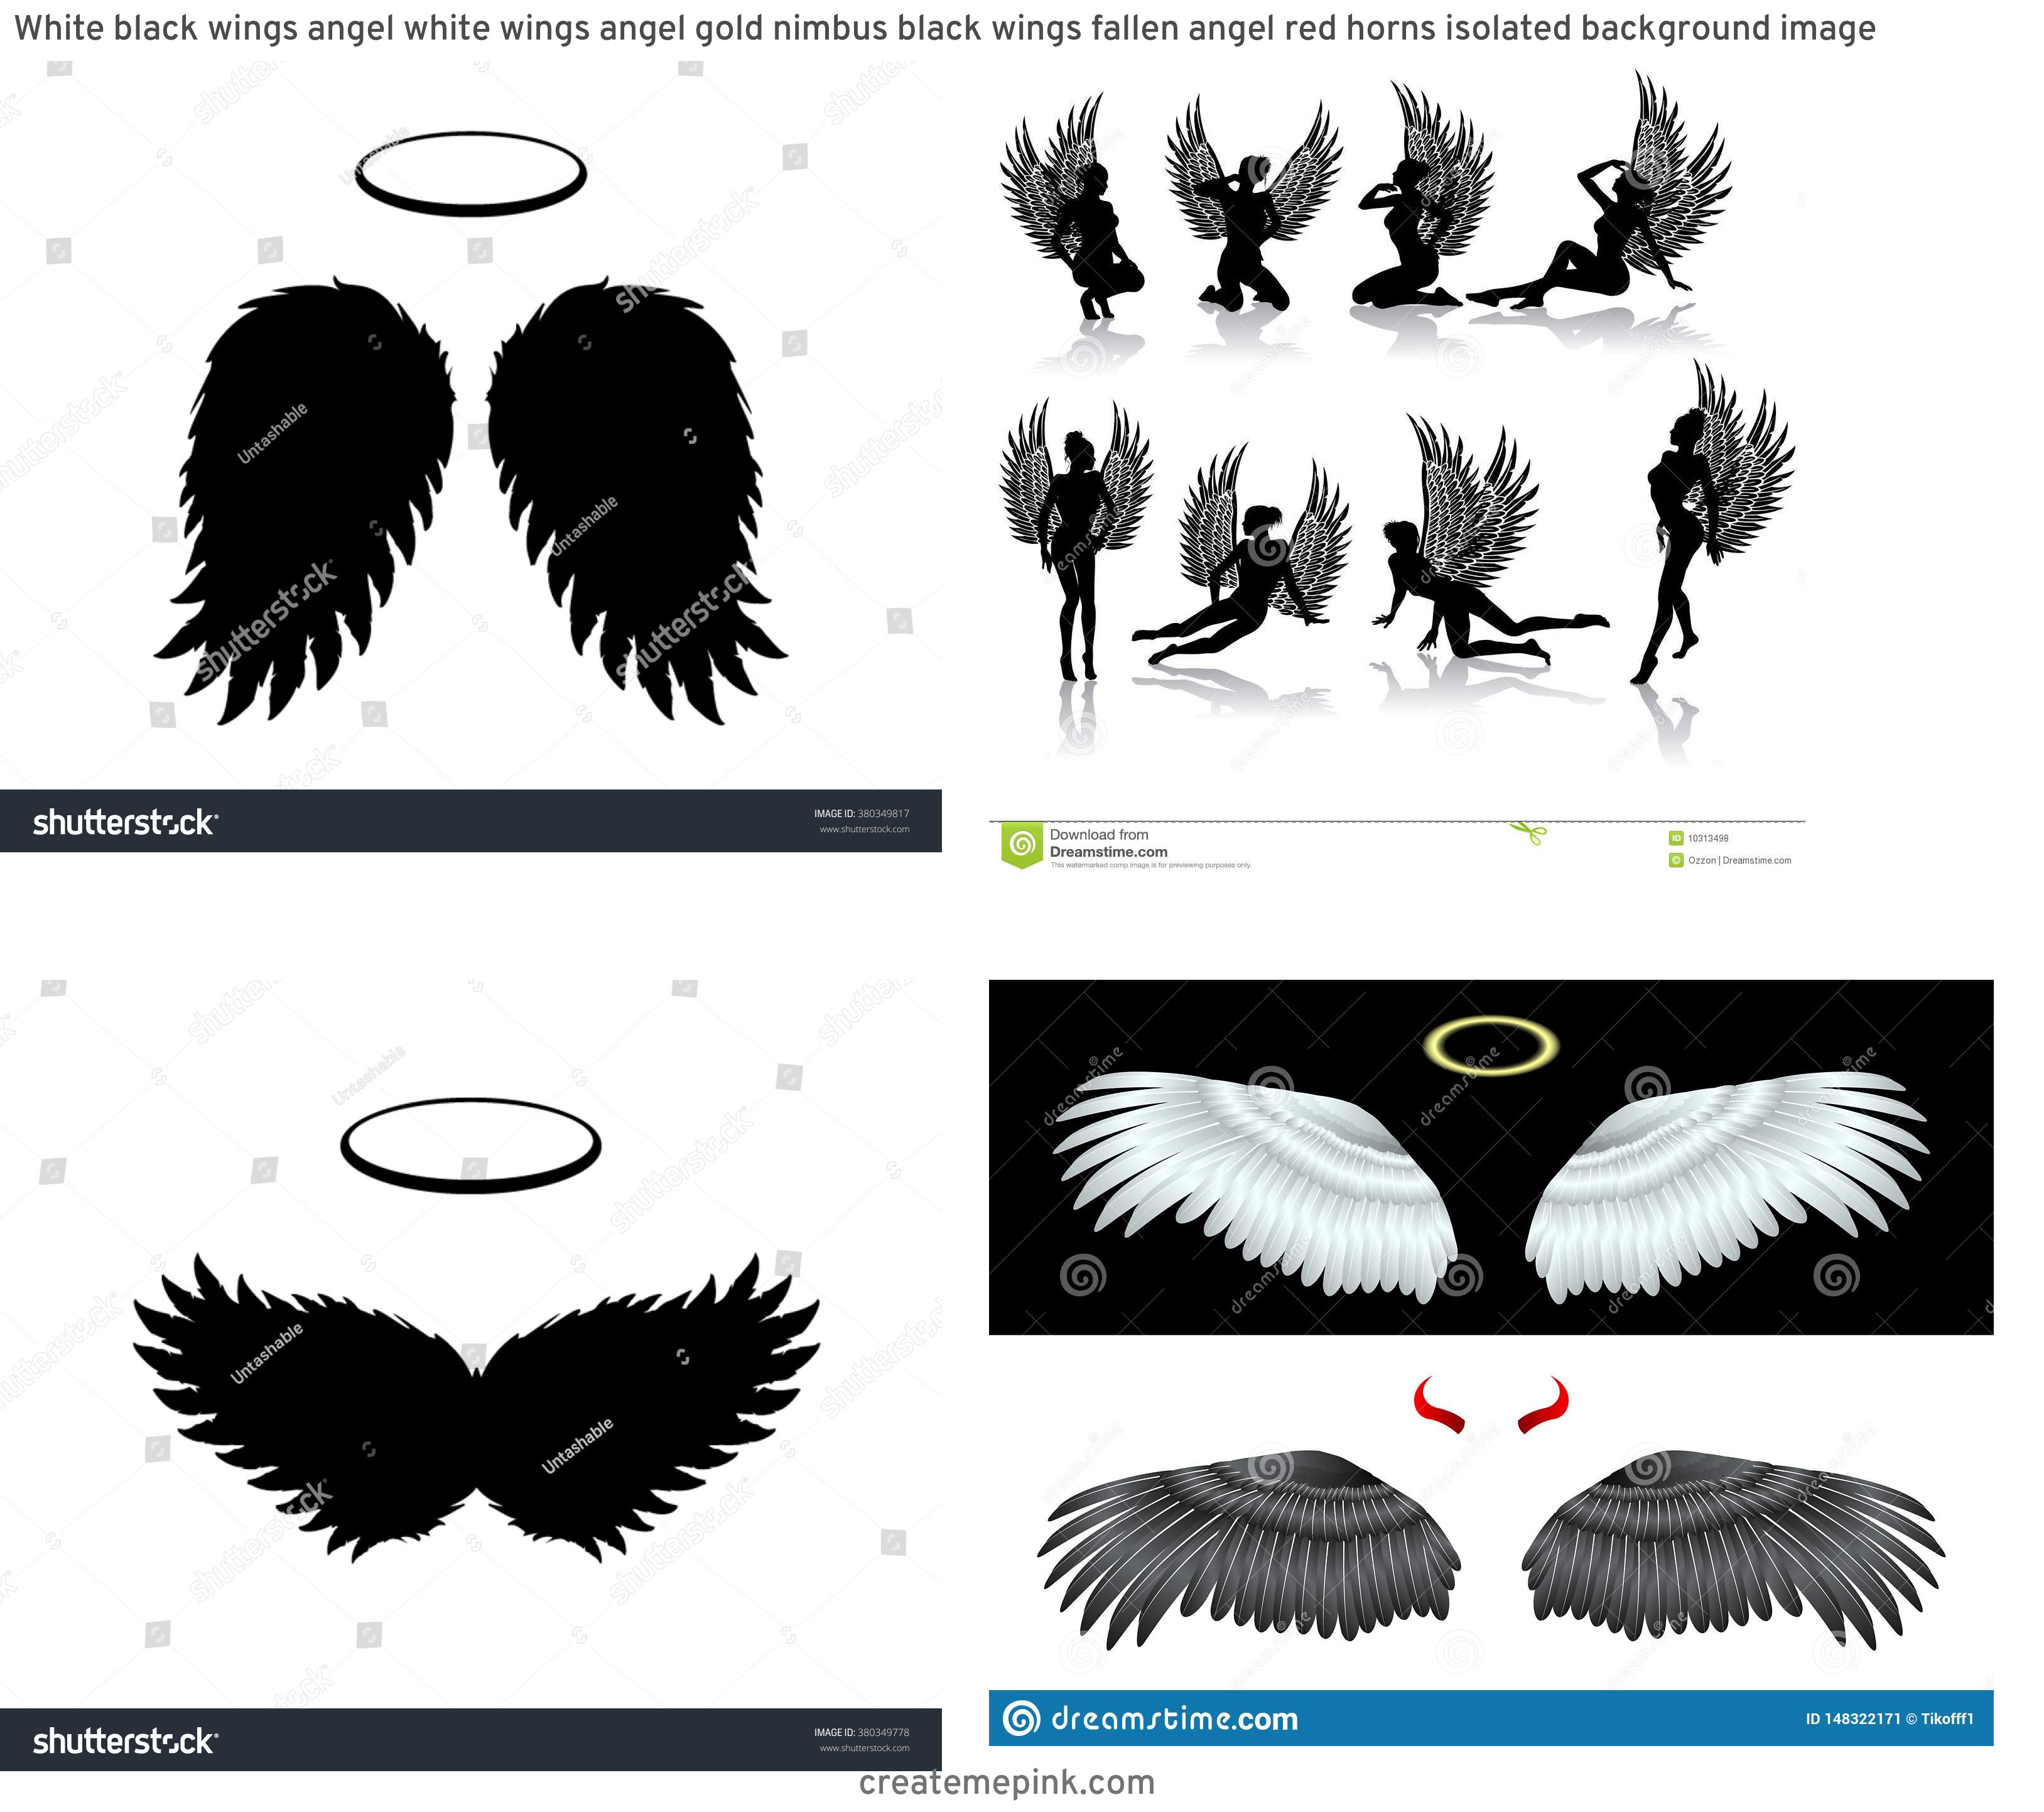 Fallen Angel Wings Vector: White Black Wings Angel White Wings Angel Gold Nimbus Black Wings Fallen Angel Red Horns Isolated Background Image